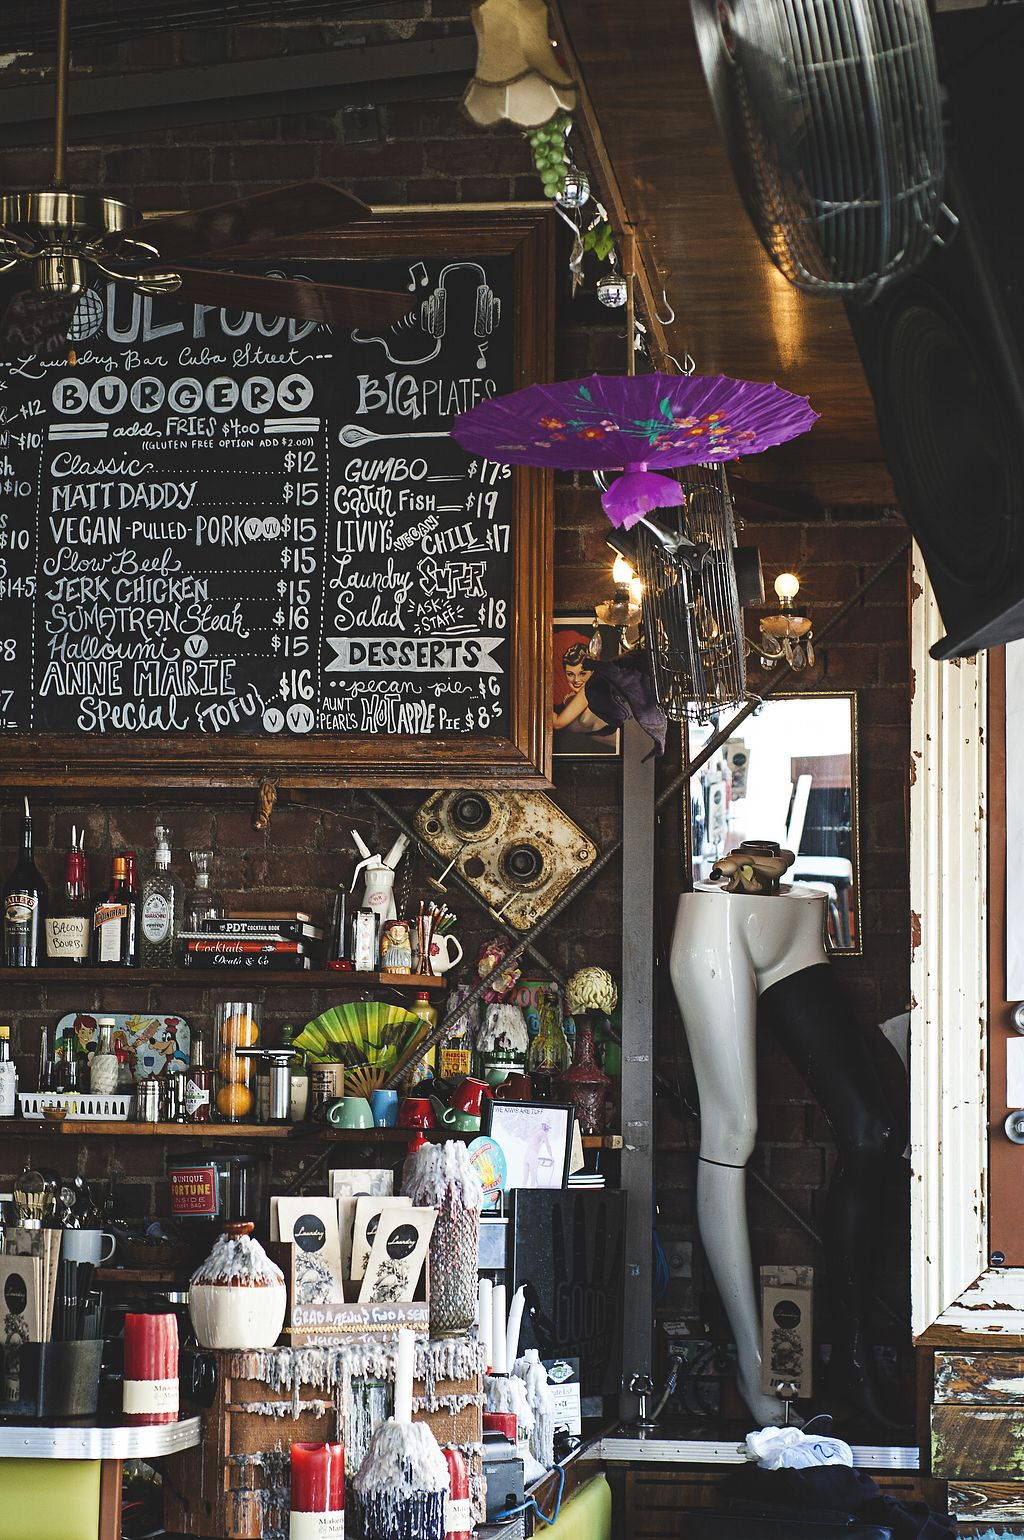 "Photo of Laundry   by <a href=""/members/profile/peasandunderstanding"">peasandunderstanding</a> <br/>Let's be real, this place is worth a stop only to admire the gorgeous bar! <br/> April 17, 2018  - <a href='/contact/abuse/image/85725/387265'>Report</a>"